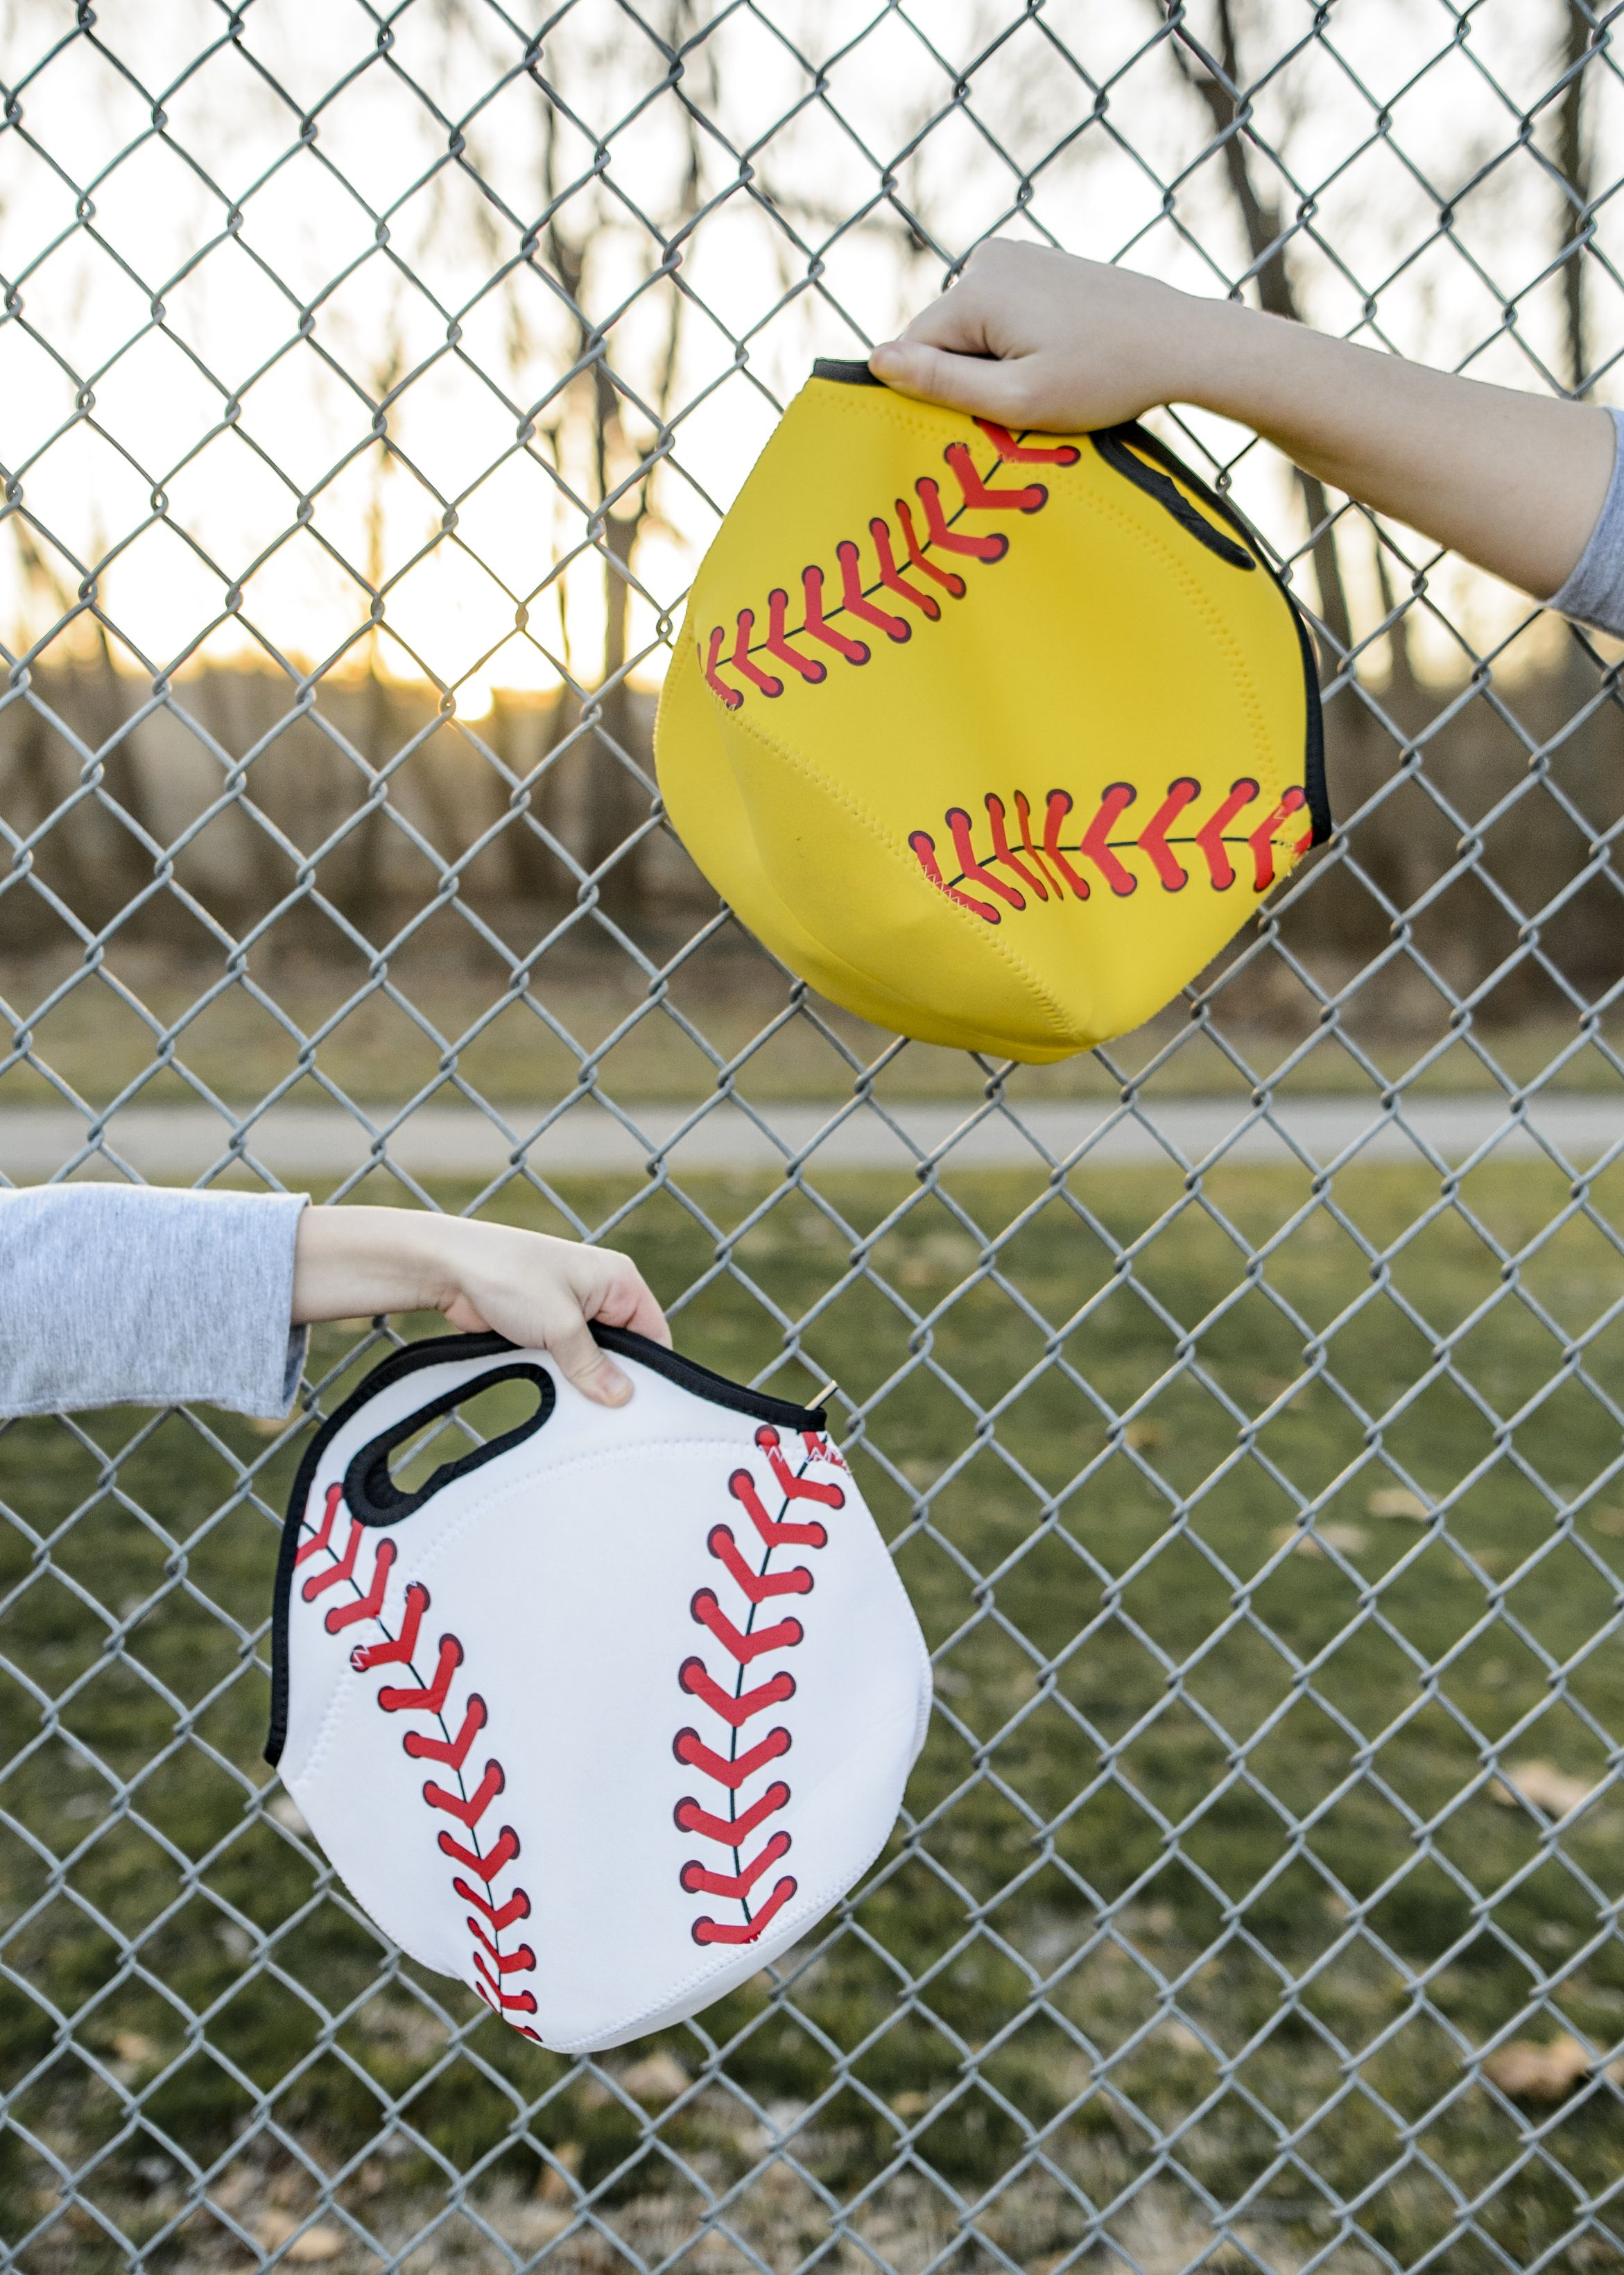 Baseball and softball insulated lunch bags are a fun twist